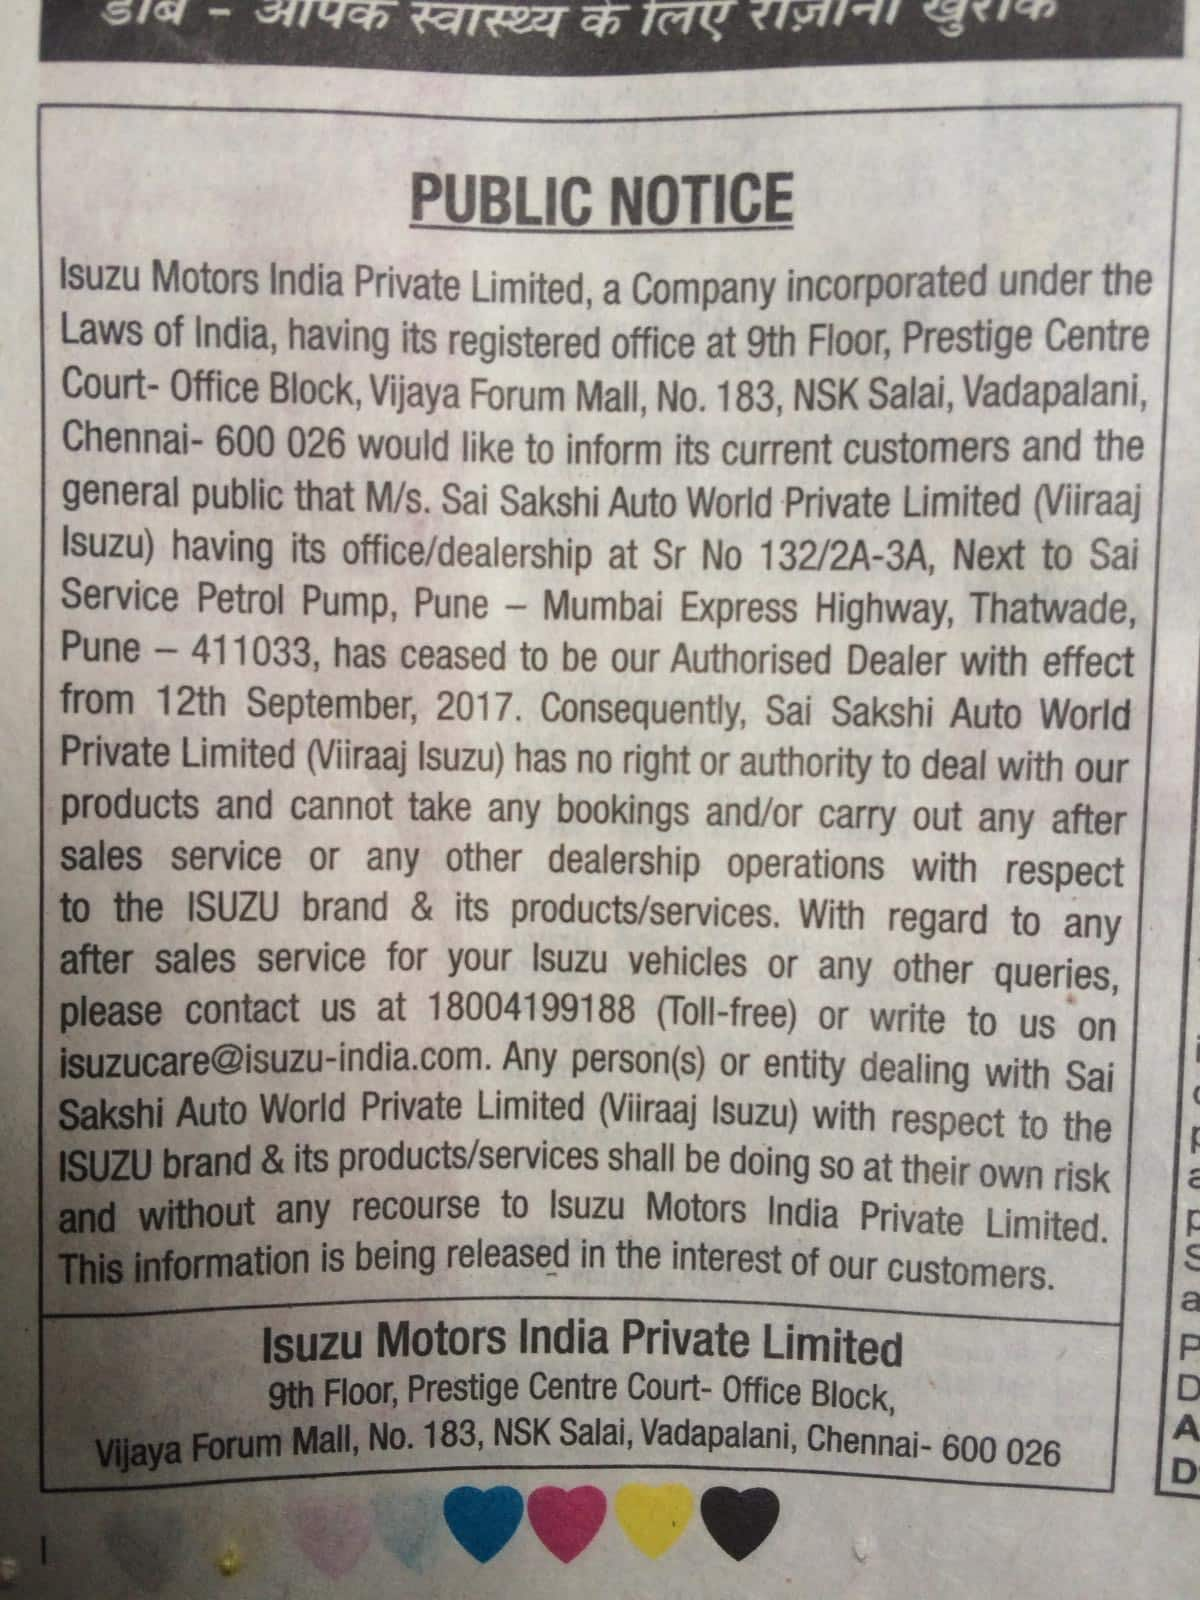 A picture of the public notice by Isuzu motors India published on September 16 in The Times of India (Pune Edition). Source: Shrivardhan Tapaswi/Moneycontrol